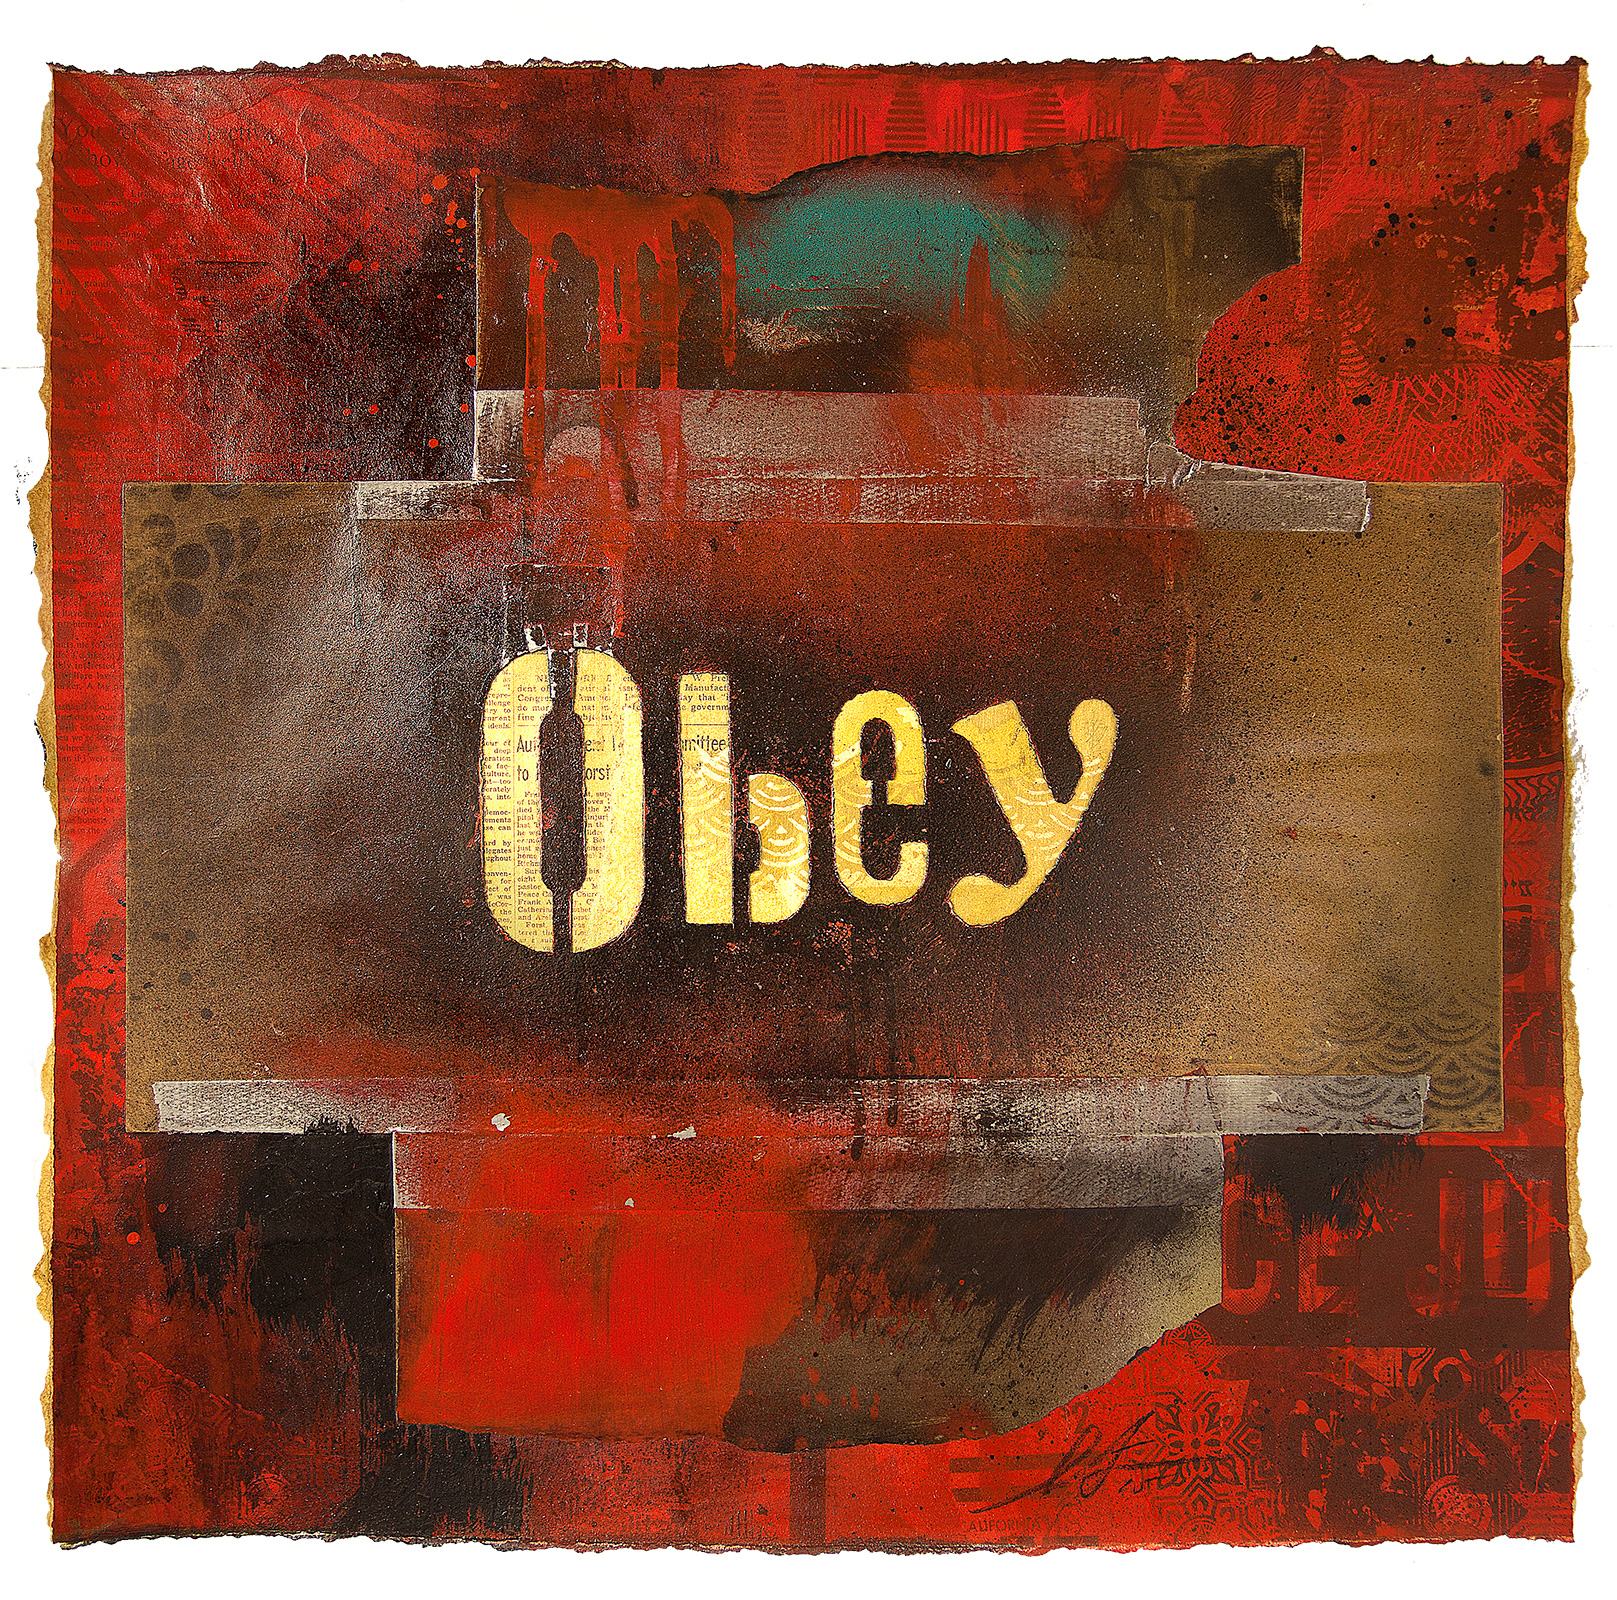 obey ransom type retired stencil obey giant. Black Bedroom Furniture Sets. Home Design Ideas